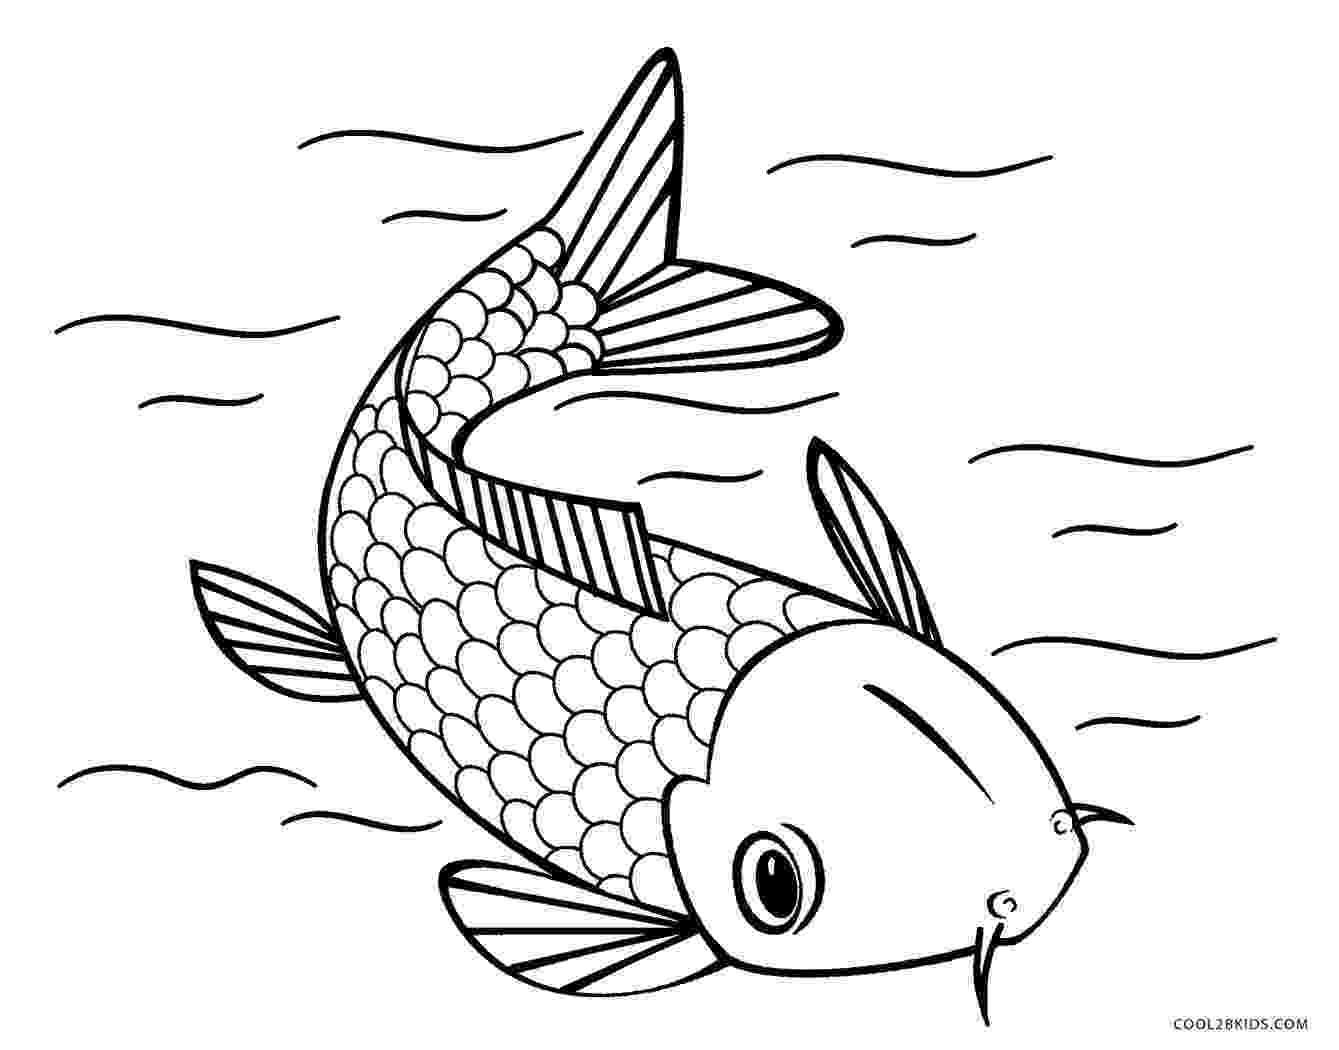 coloring picture fish print download cute and educative fish coloring pages coloring fish picture